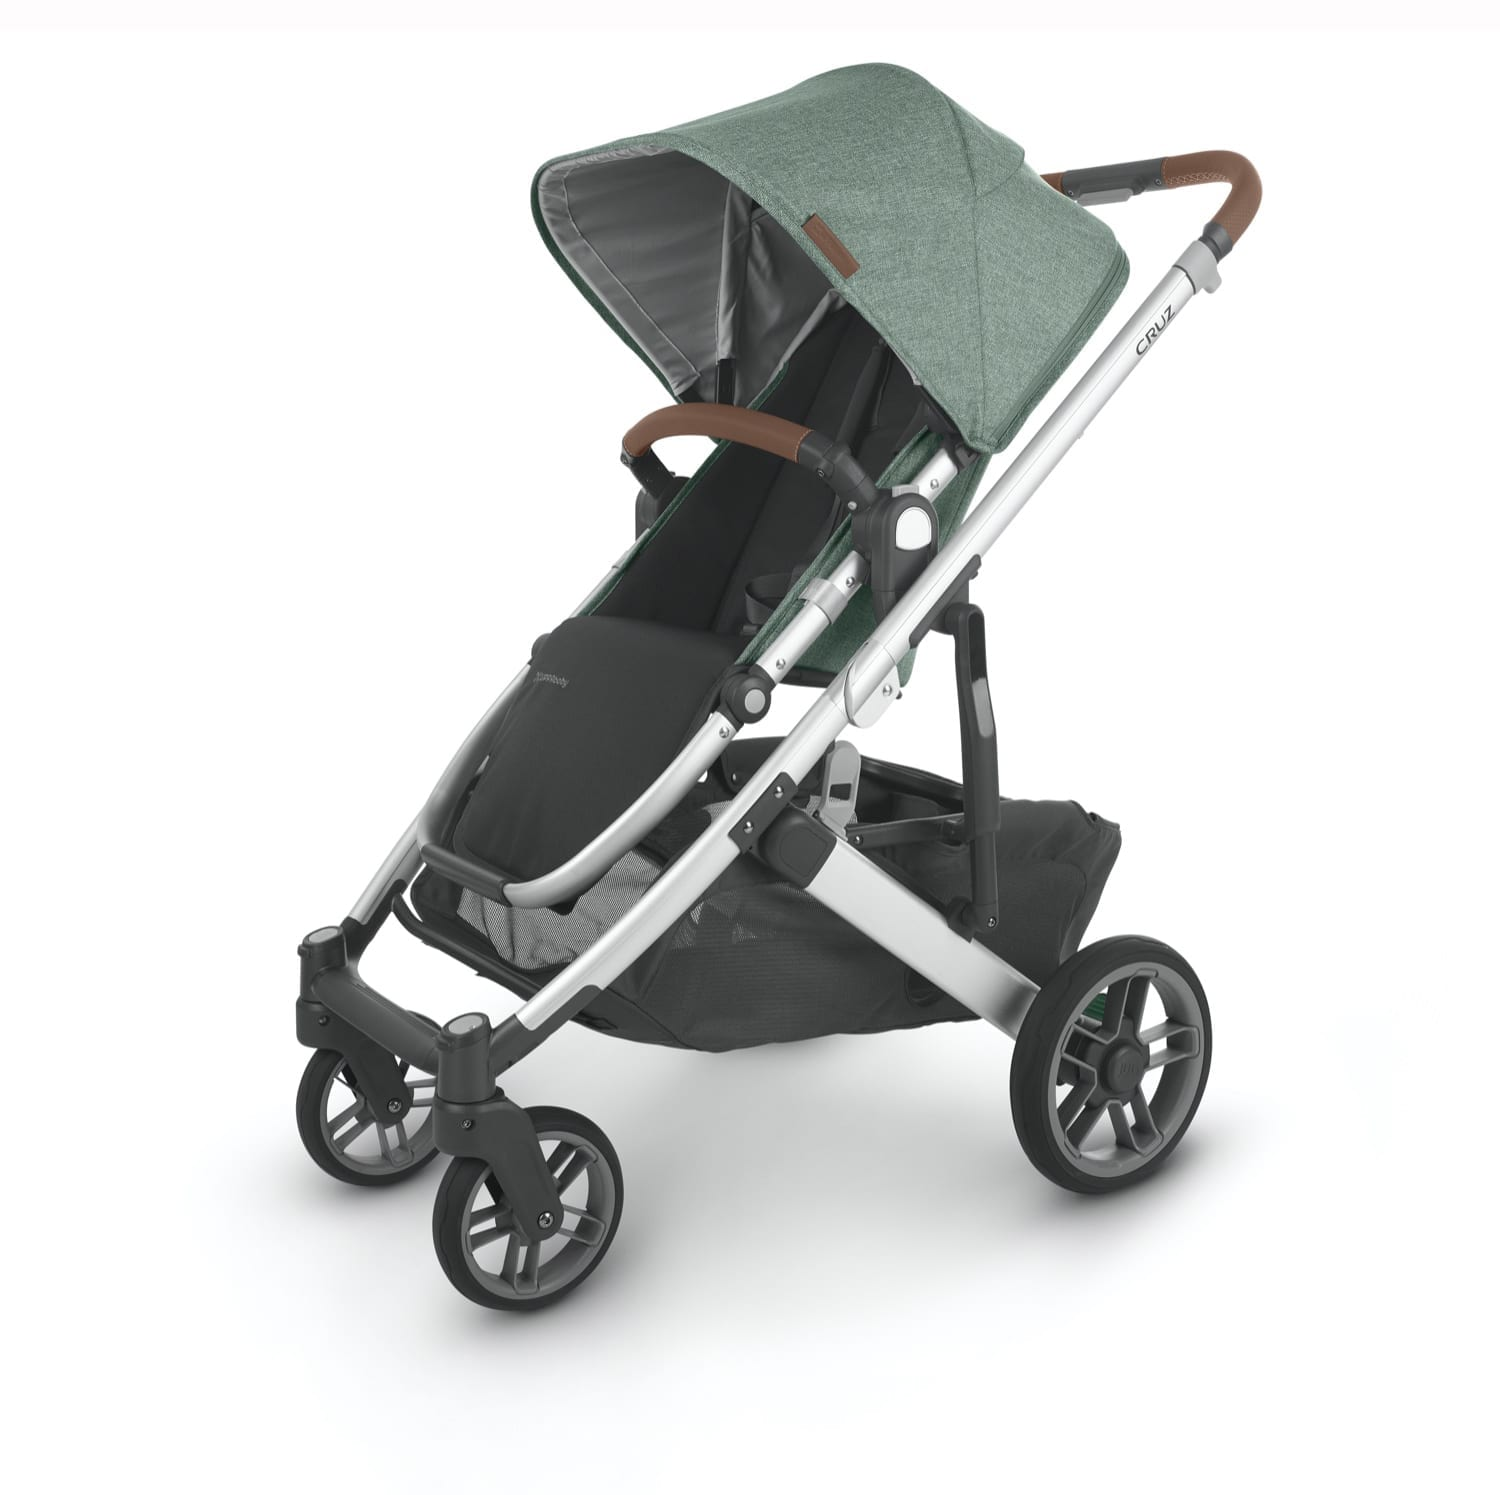 UPPABaby CRUZ 2 Stroller – EMMETT product image